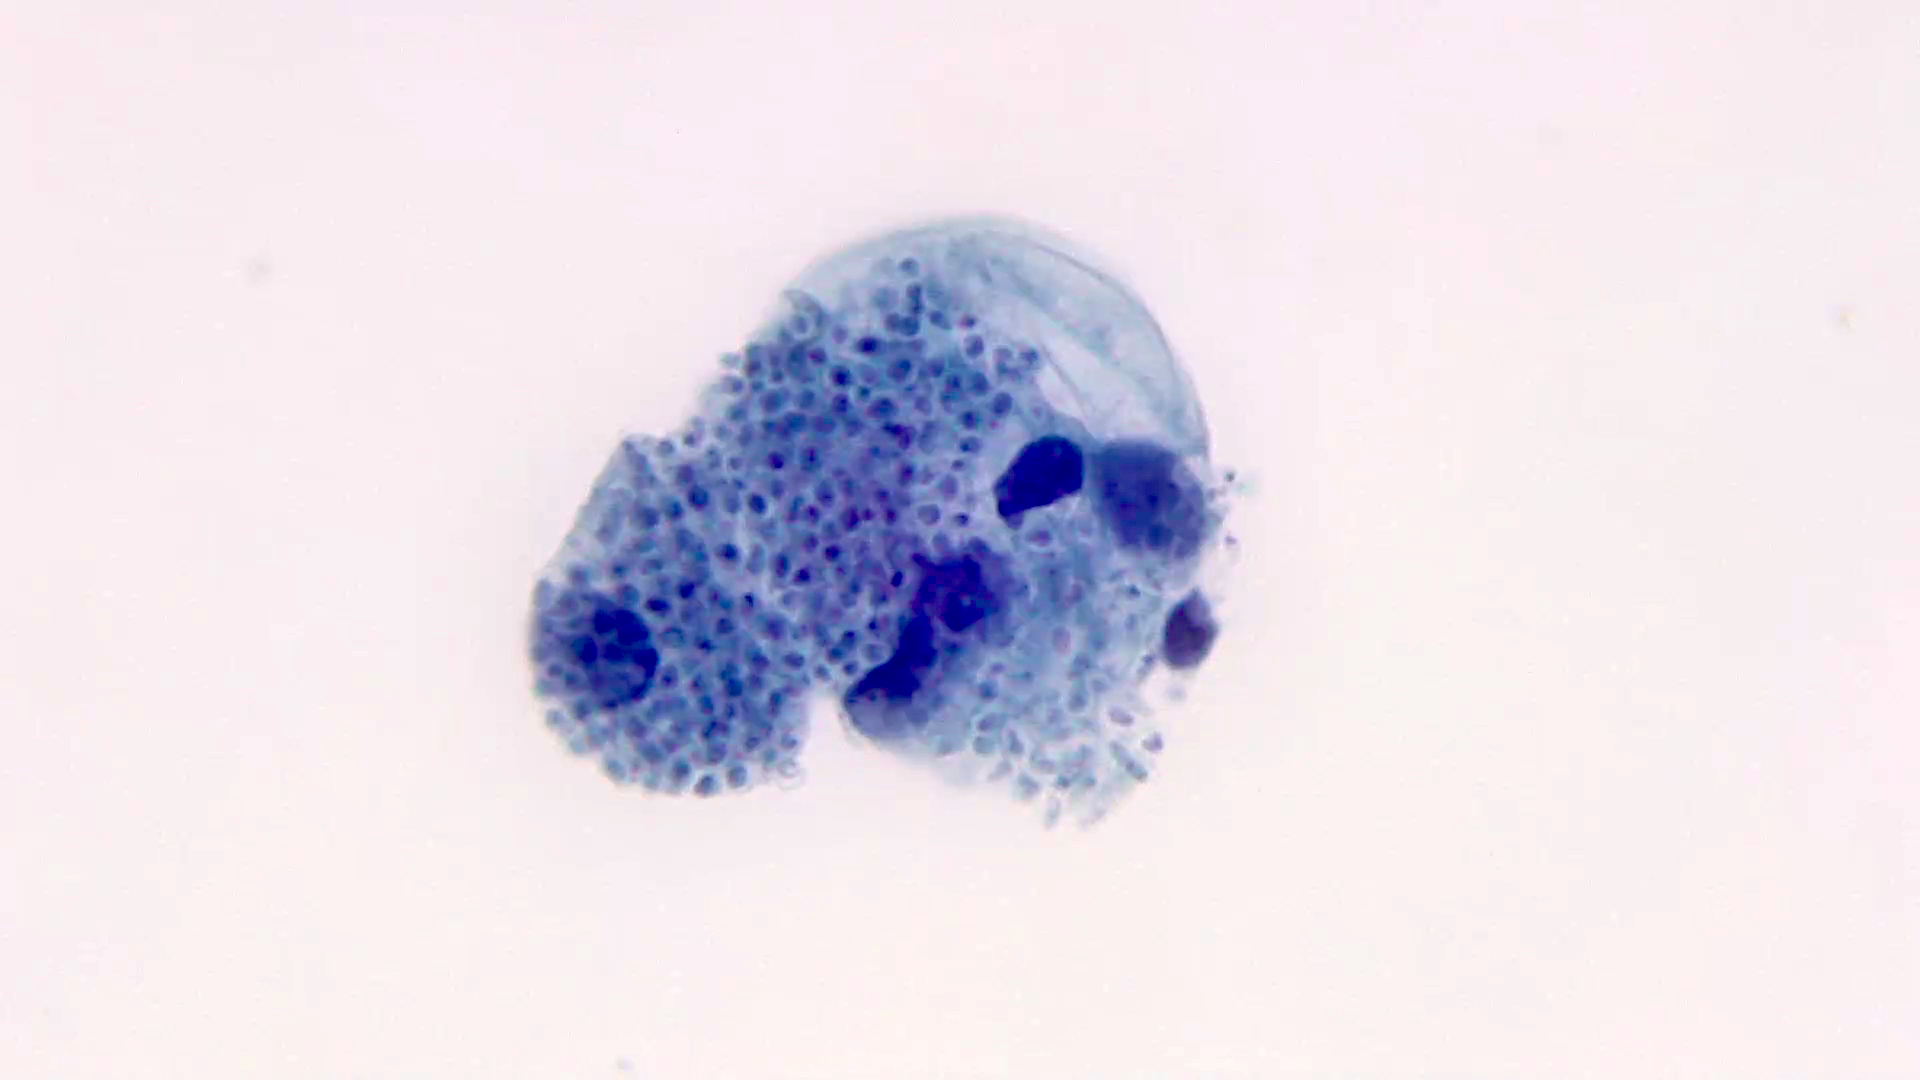 Uniform clustered yeasts within histiocytes